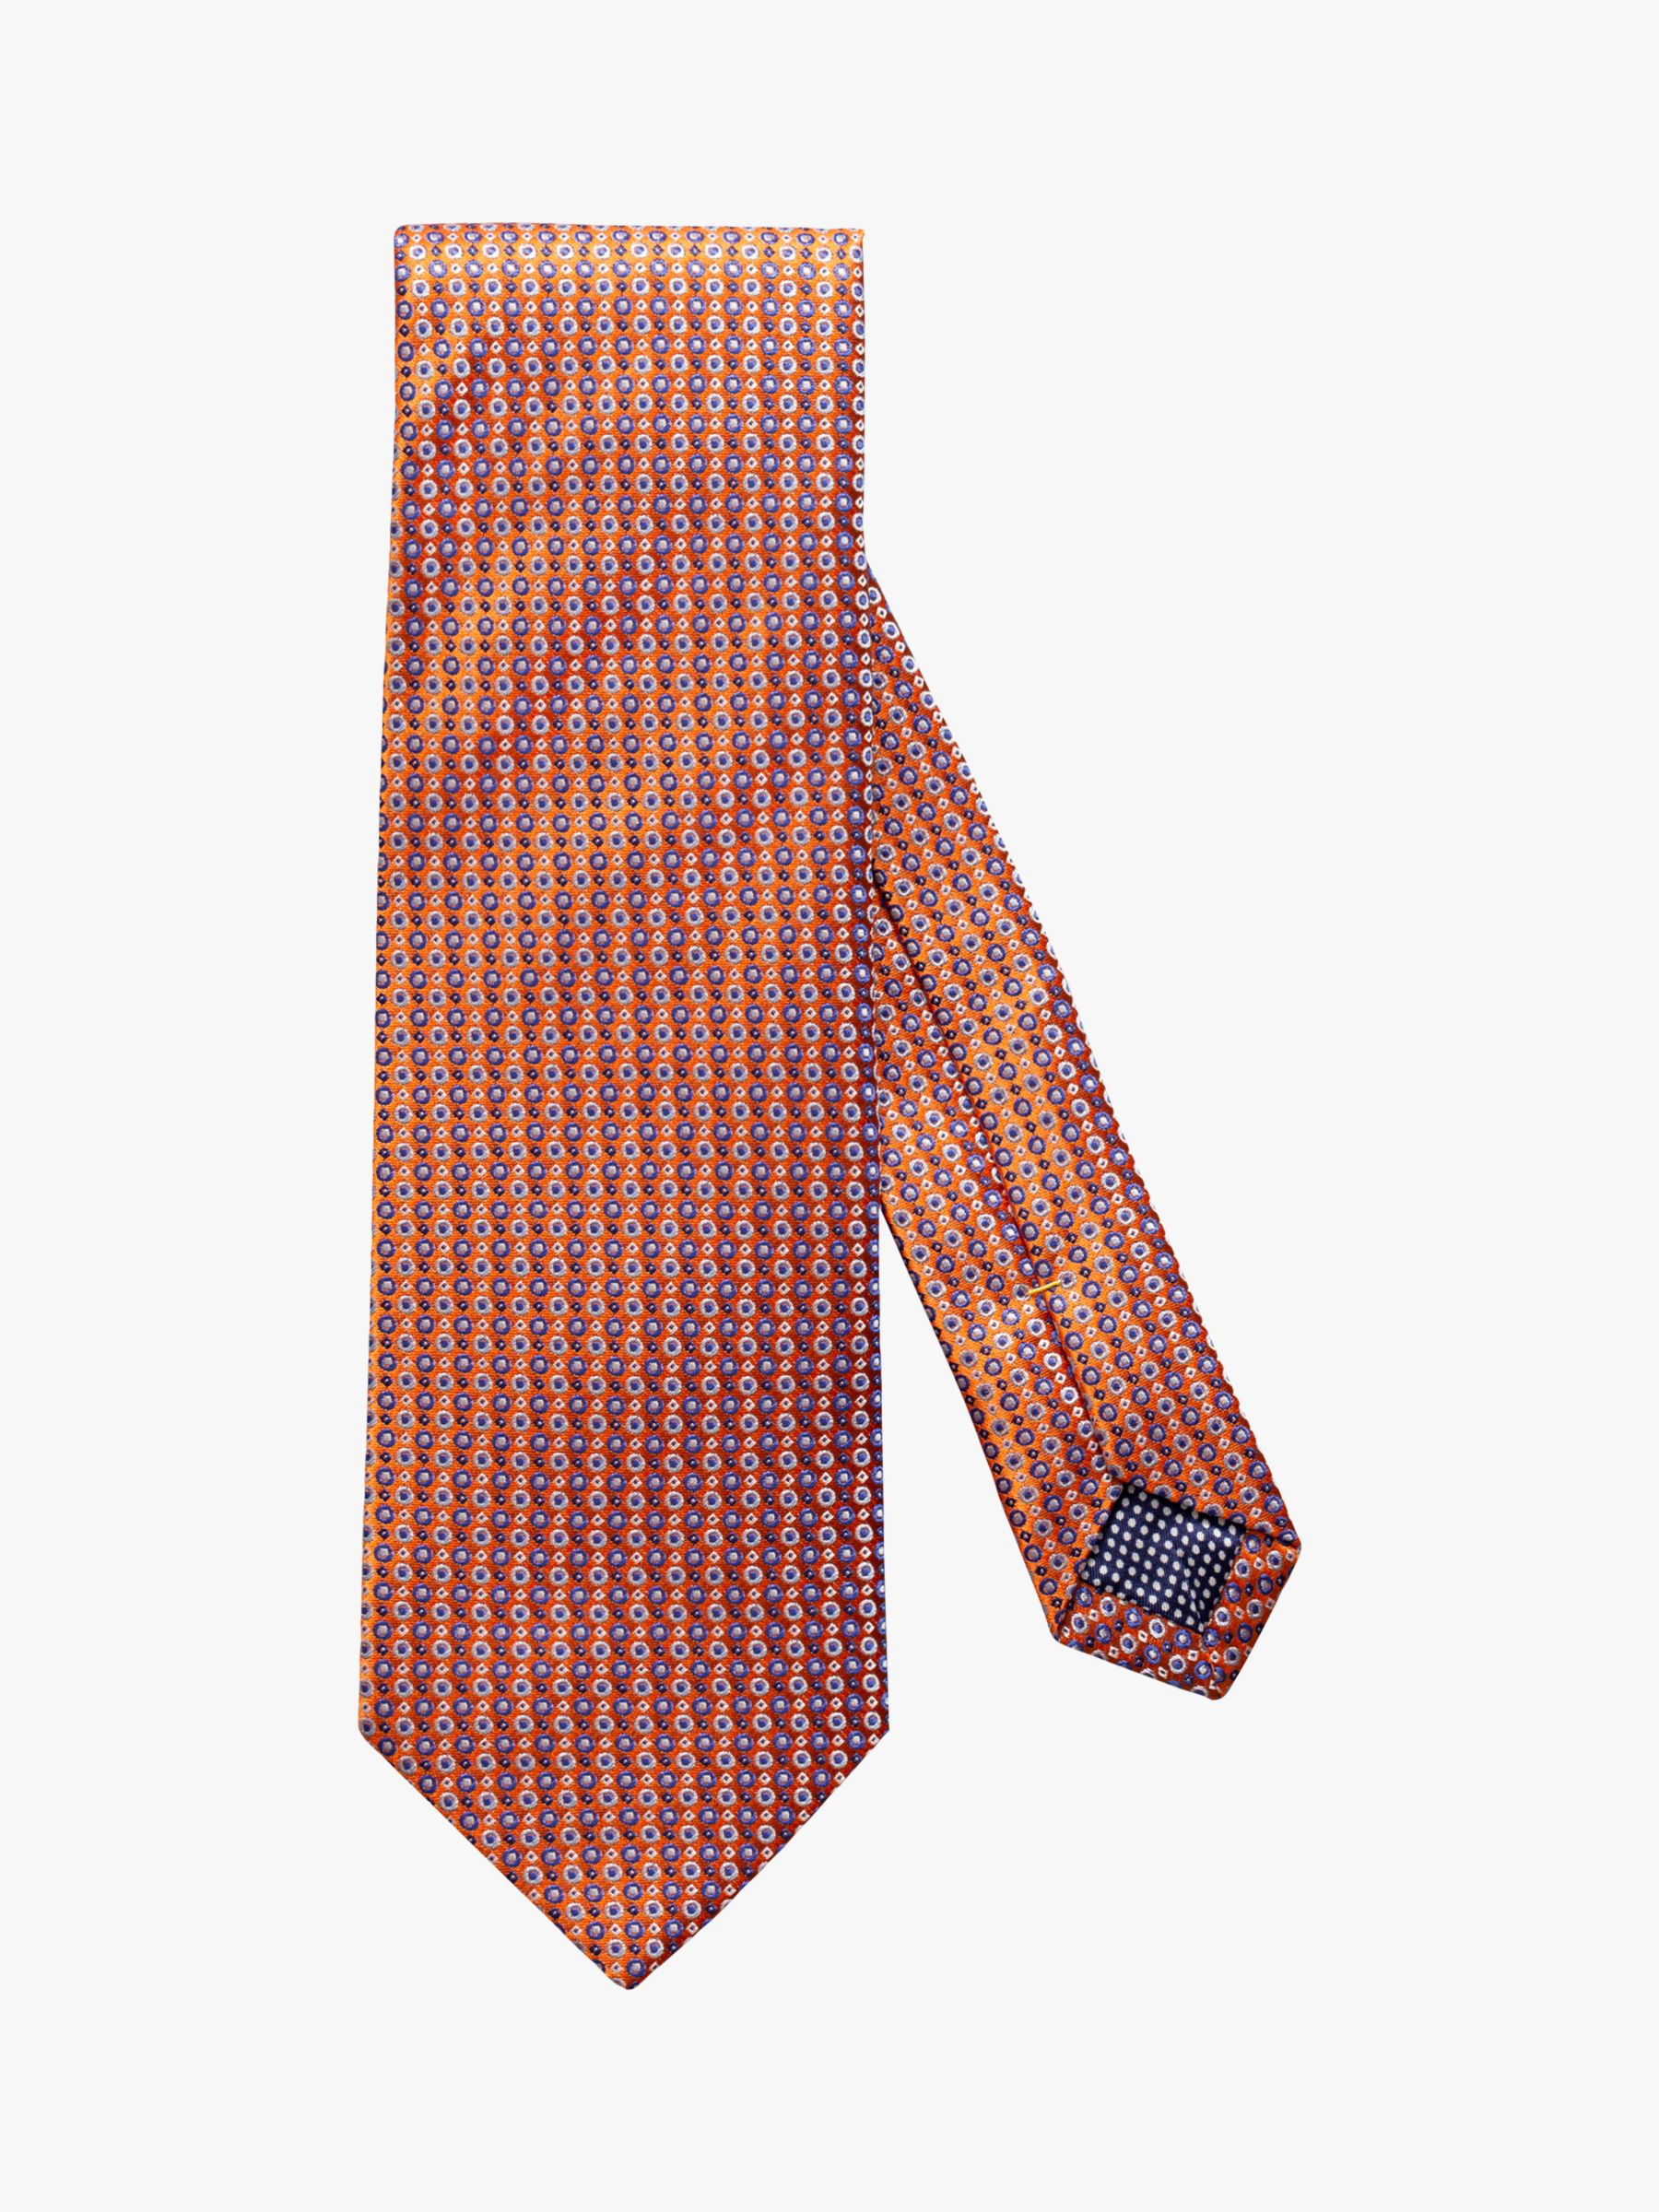 Eton Eton Geometric Silk Tie, Orange